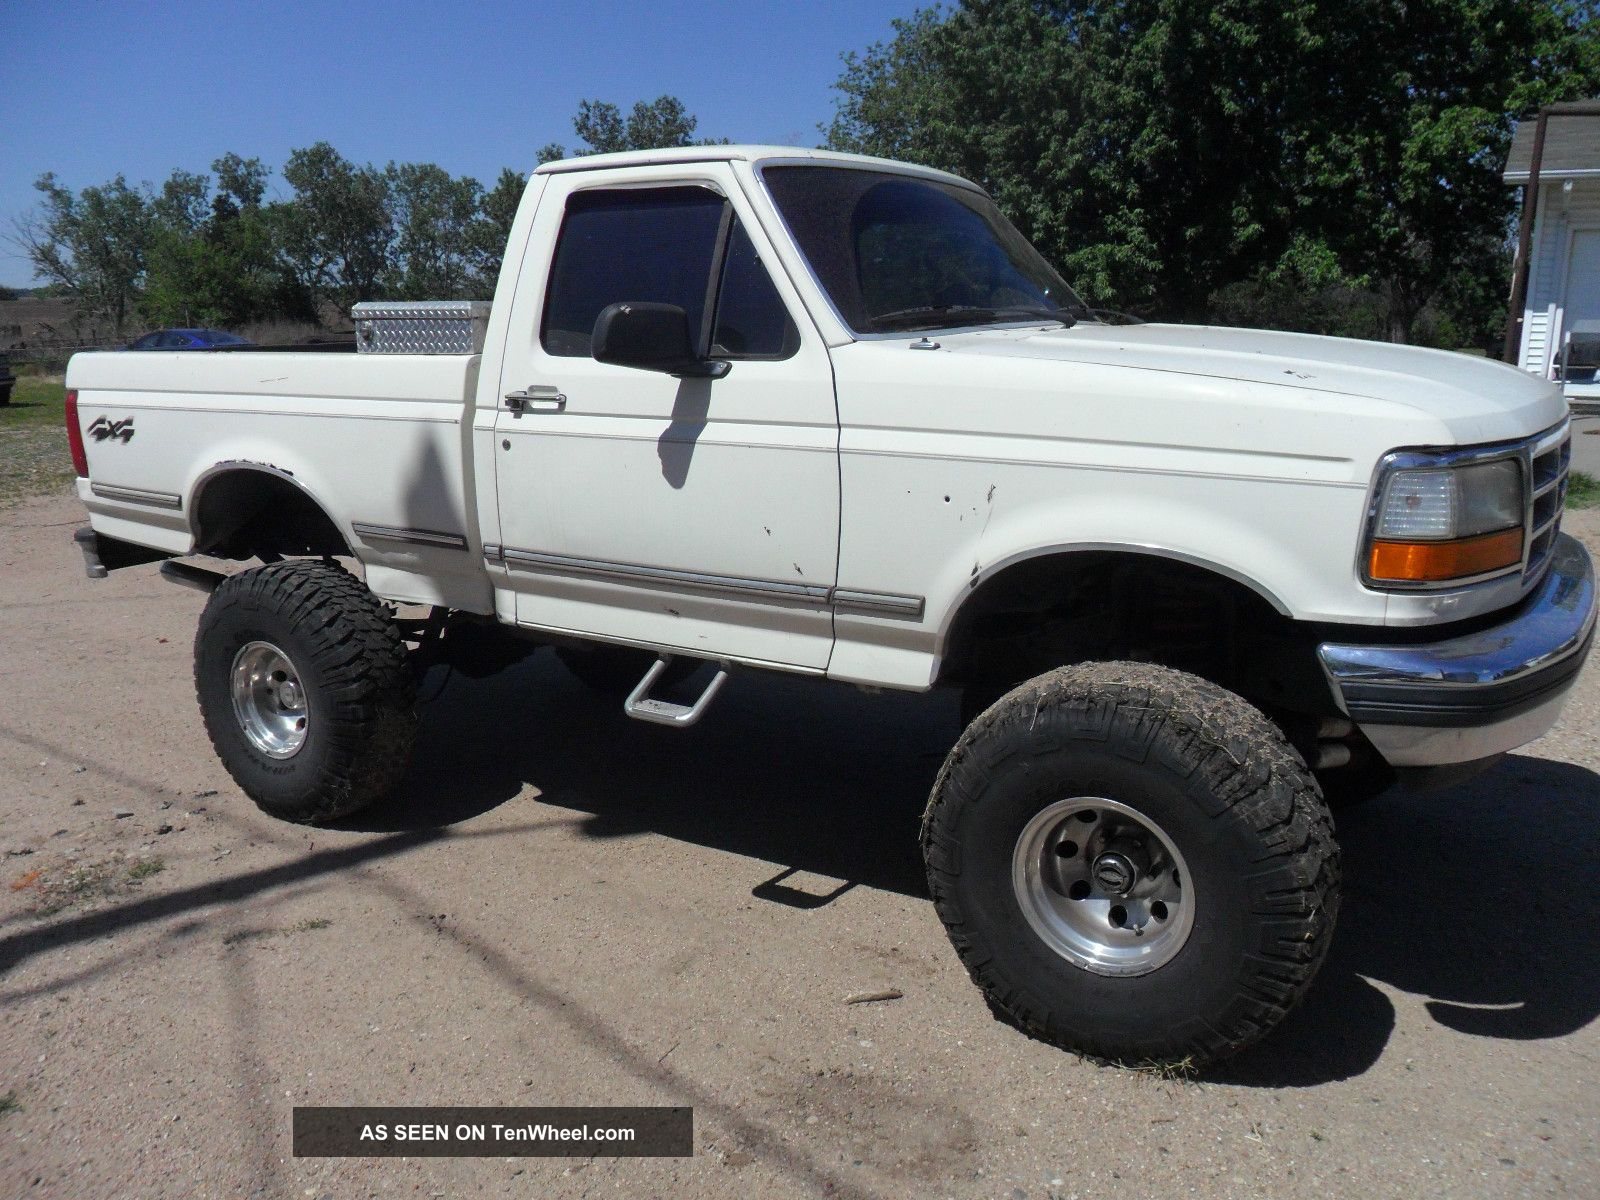 pics photos 1992 ford f150 4x4 truck 1 ford flareside for sale images